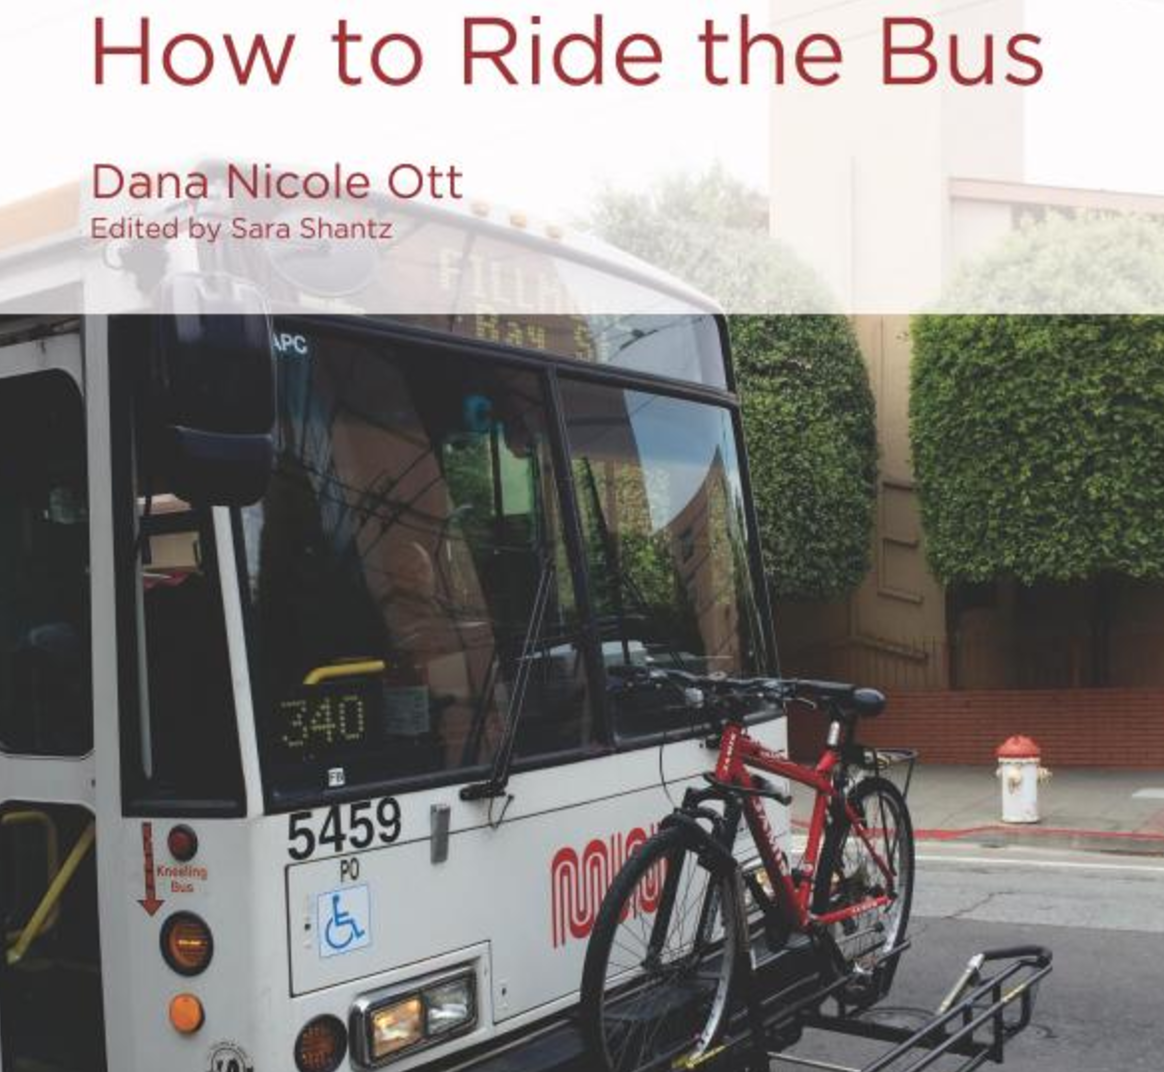 How to Ride the Bus   Author Dana Nicole Ott knows a lot about How to Ride How to Ride the Bus; her mother is a bus driver and she takes the bus to school every day. Learn about San Francisco's public transportation system and how to study the parts of words to understand their meanings.  Buy this book.